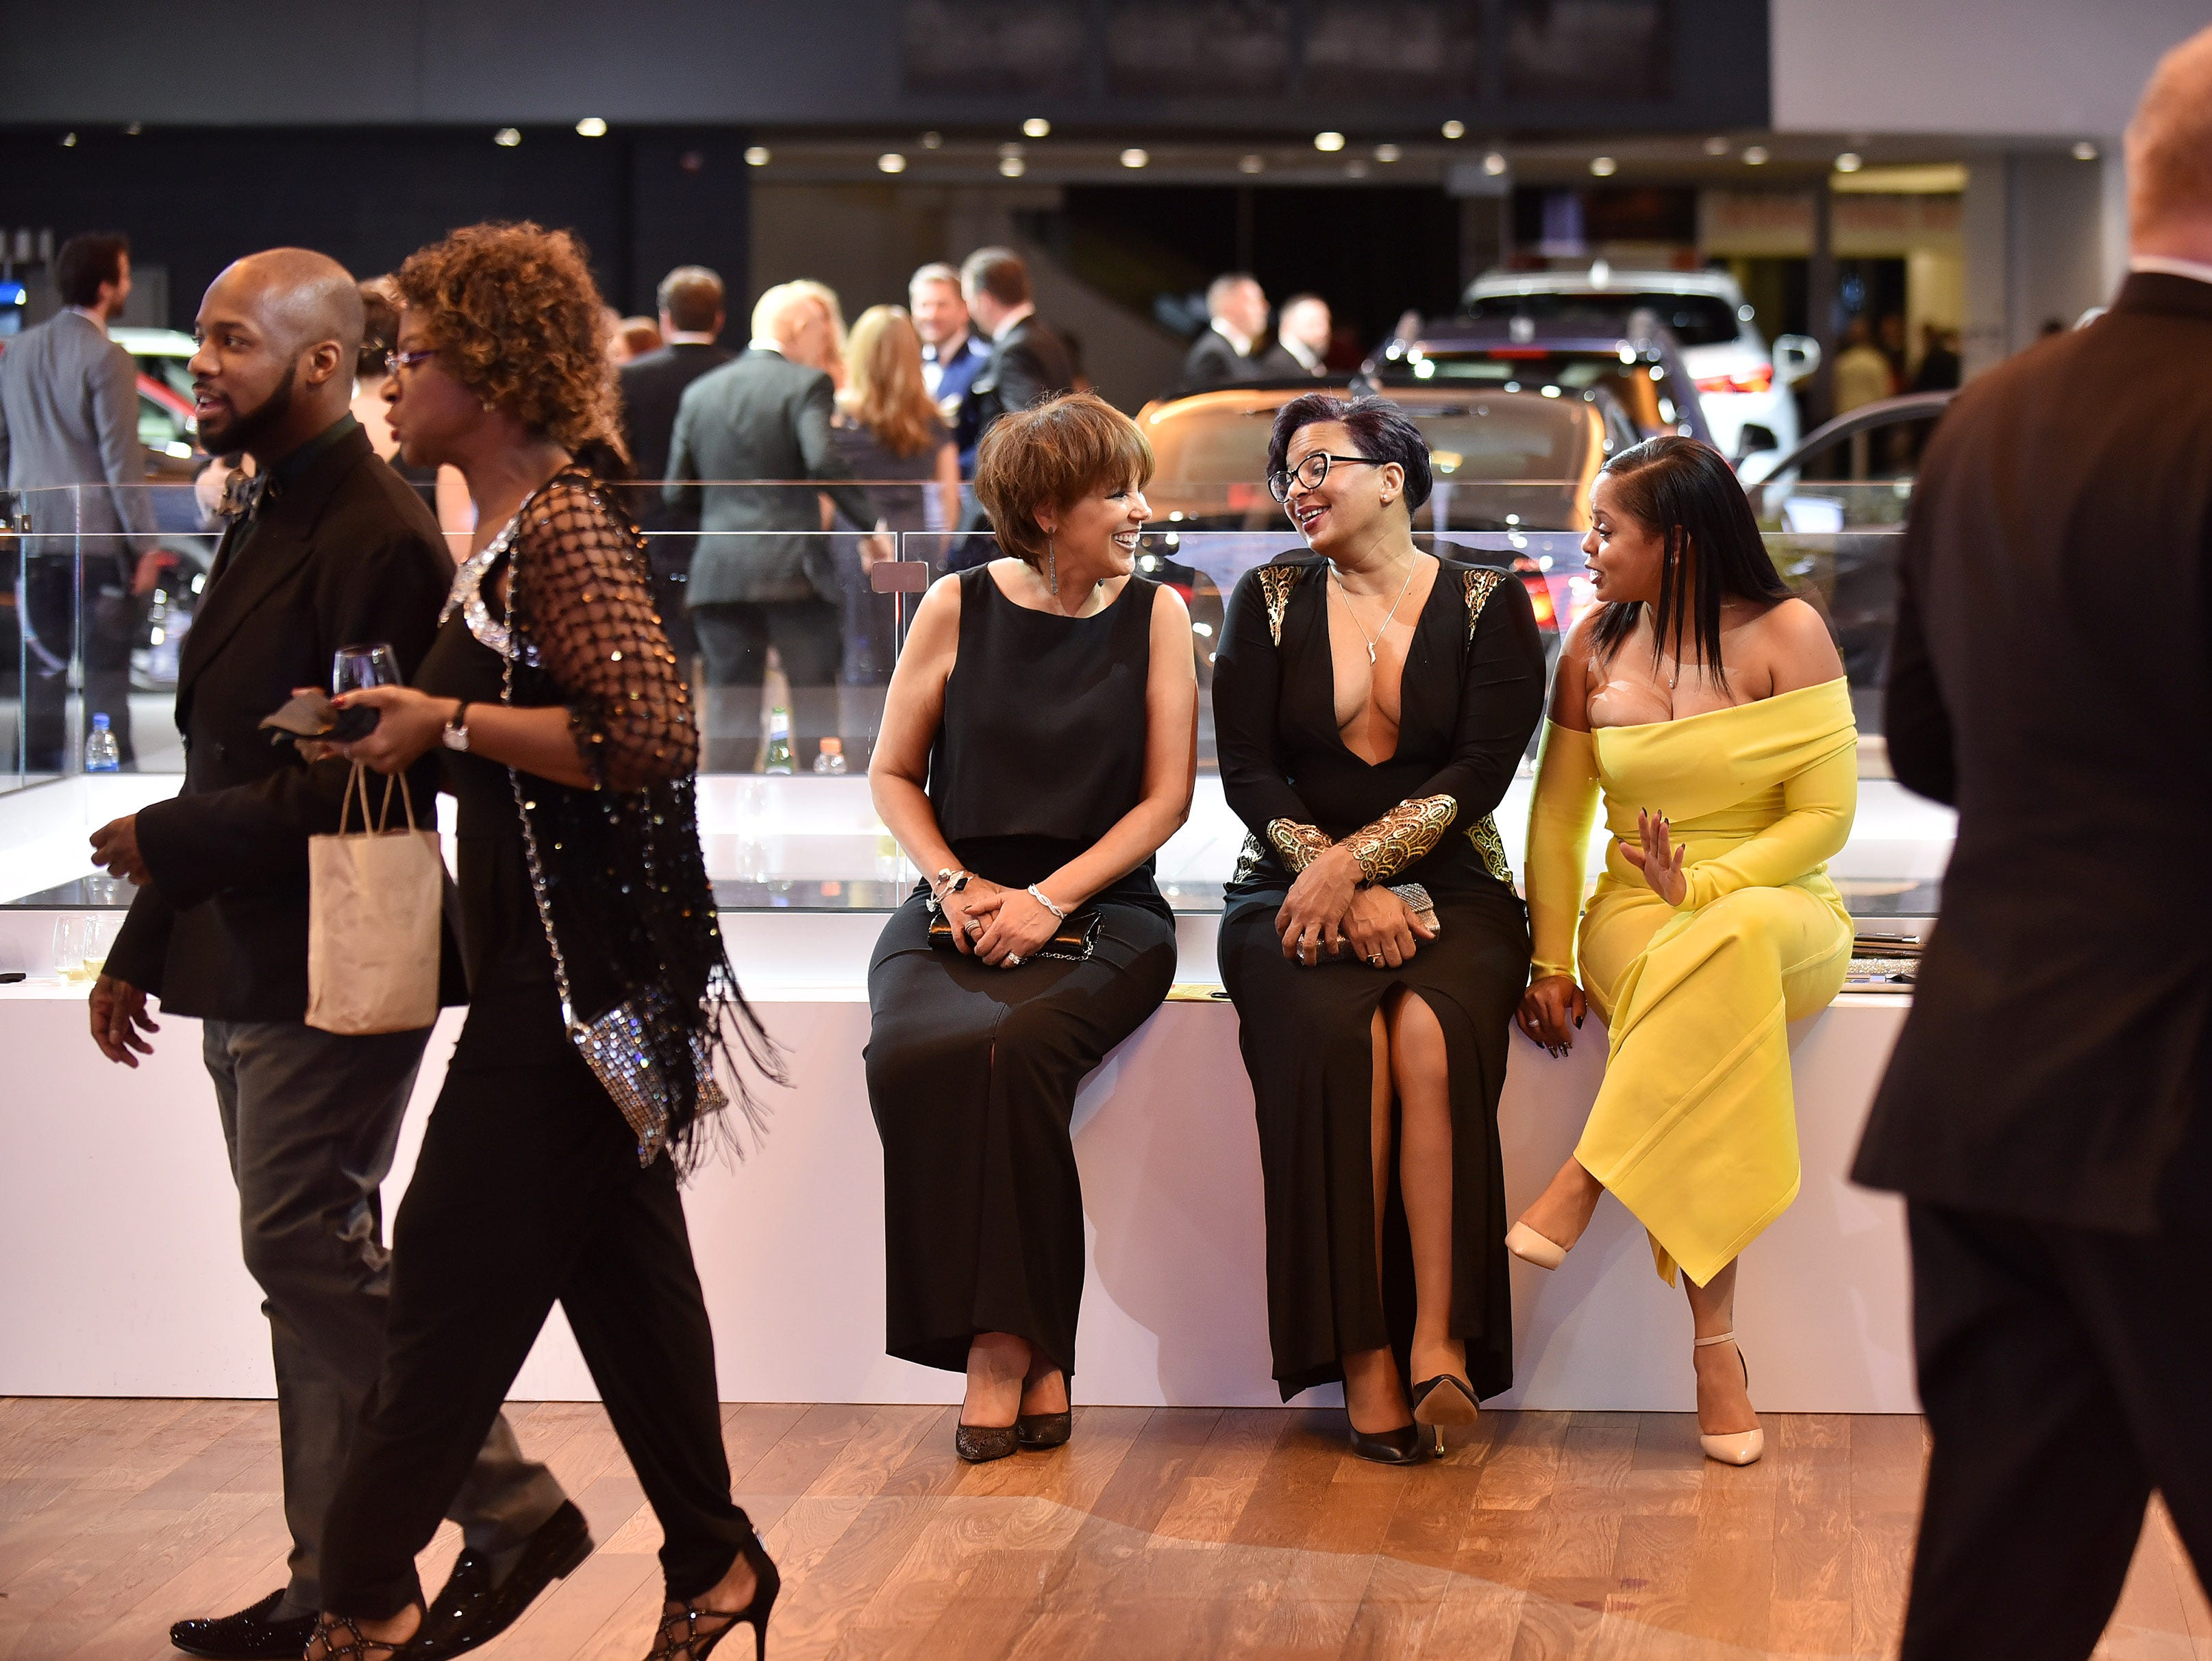 From left, Pam Wood of Farmington Hills, Marie May of Westland and Rhonda Parker of Canton chat near the Chevrolet display at the Charity Preview.